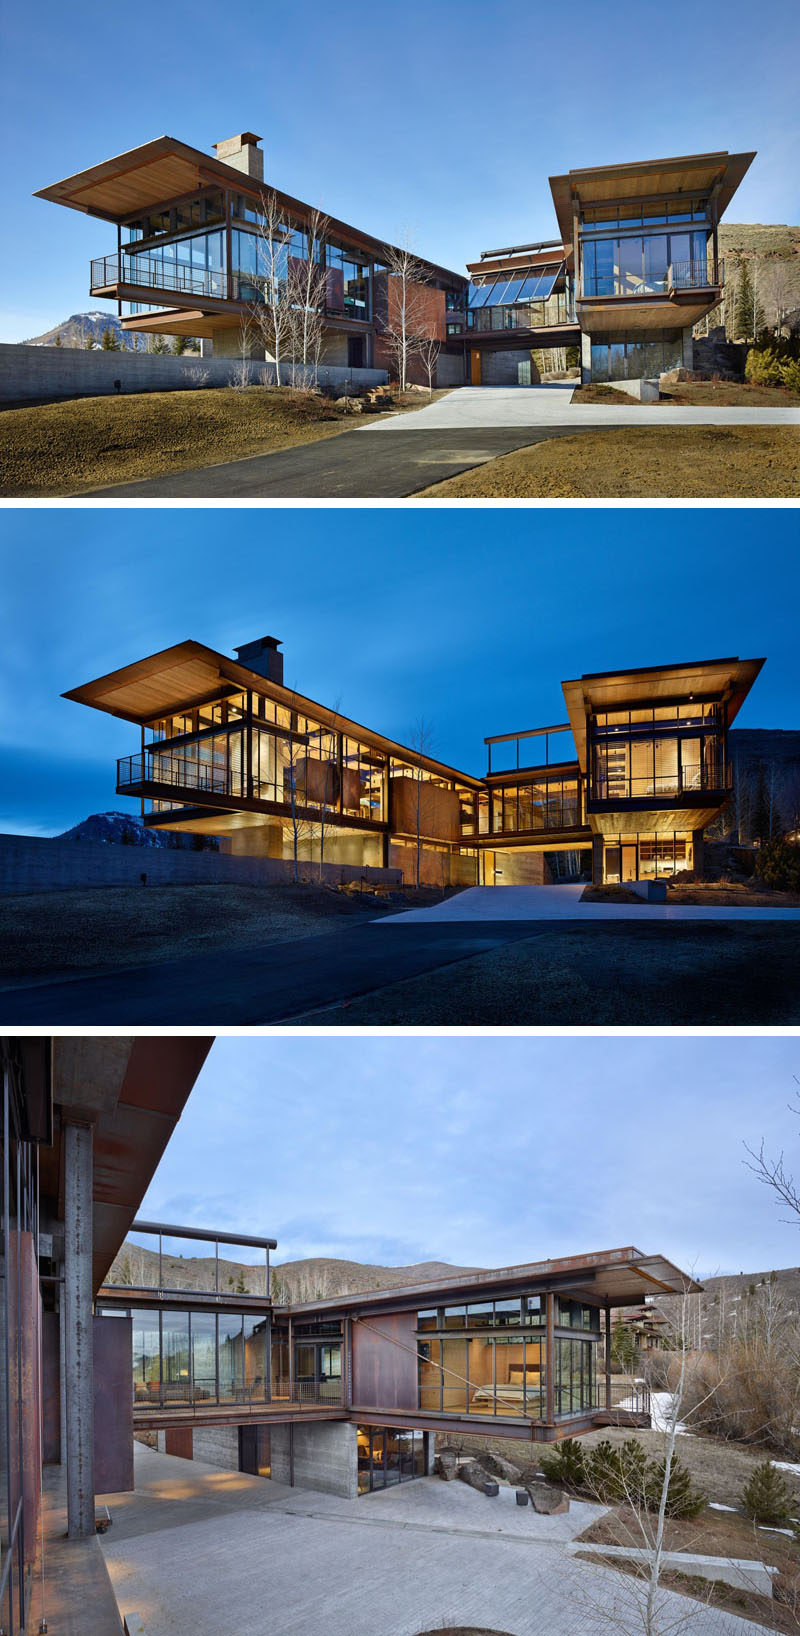 Elements of concrete and wood have been paired with steel and glass in this modern industrial home, like in the bright that connects the two sides of the home, and a glass wall that pivots open.